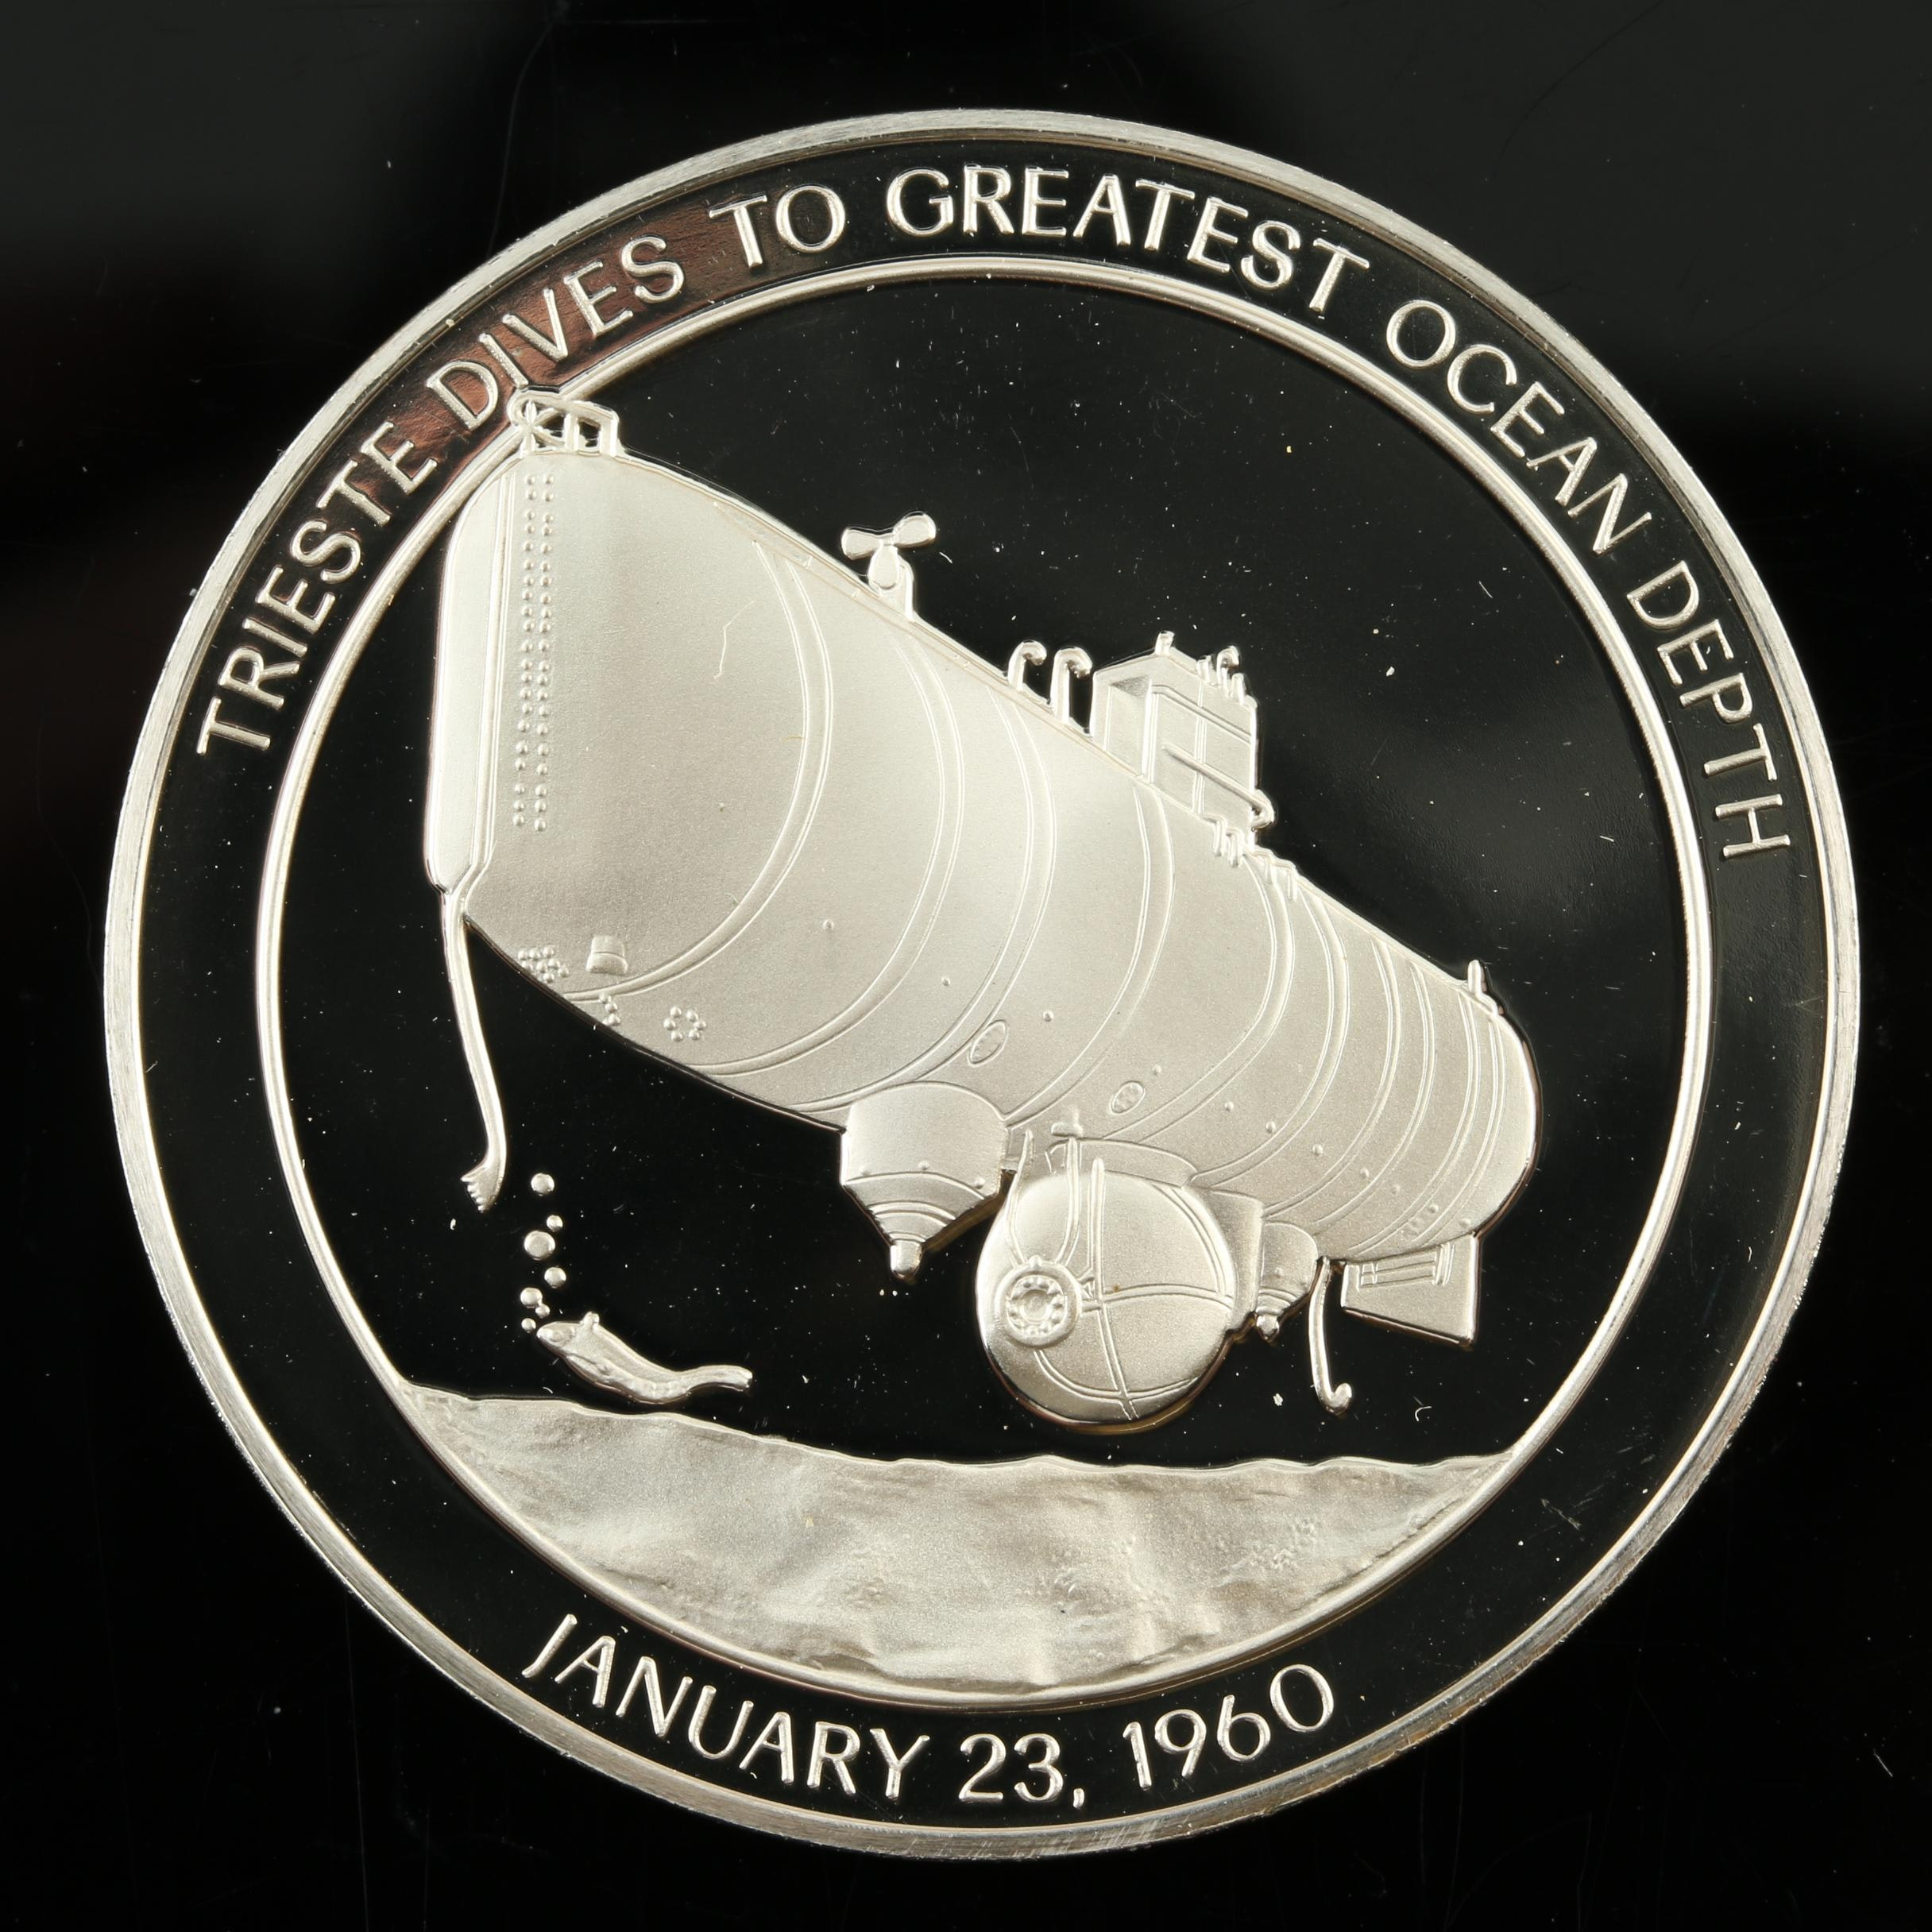 Sterling Silver Medal Commemorating Submersible Trieste Dive in 1960